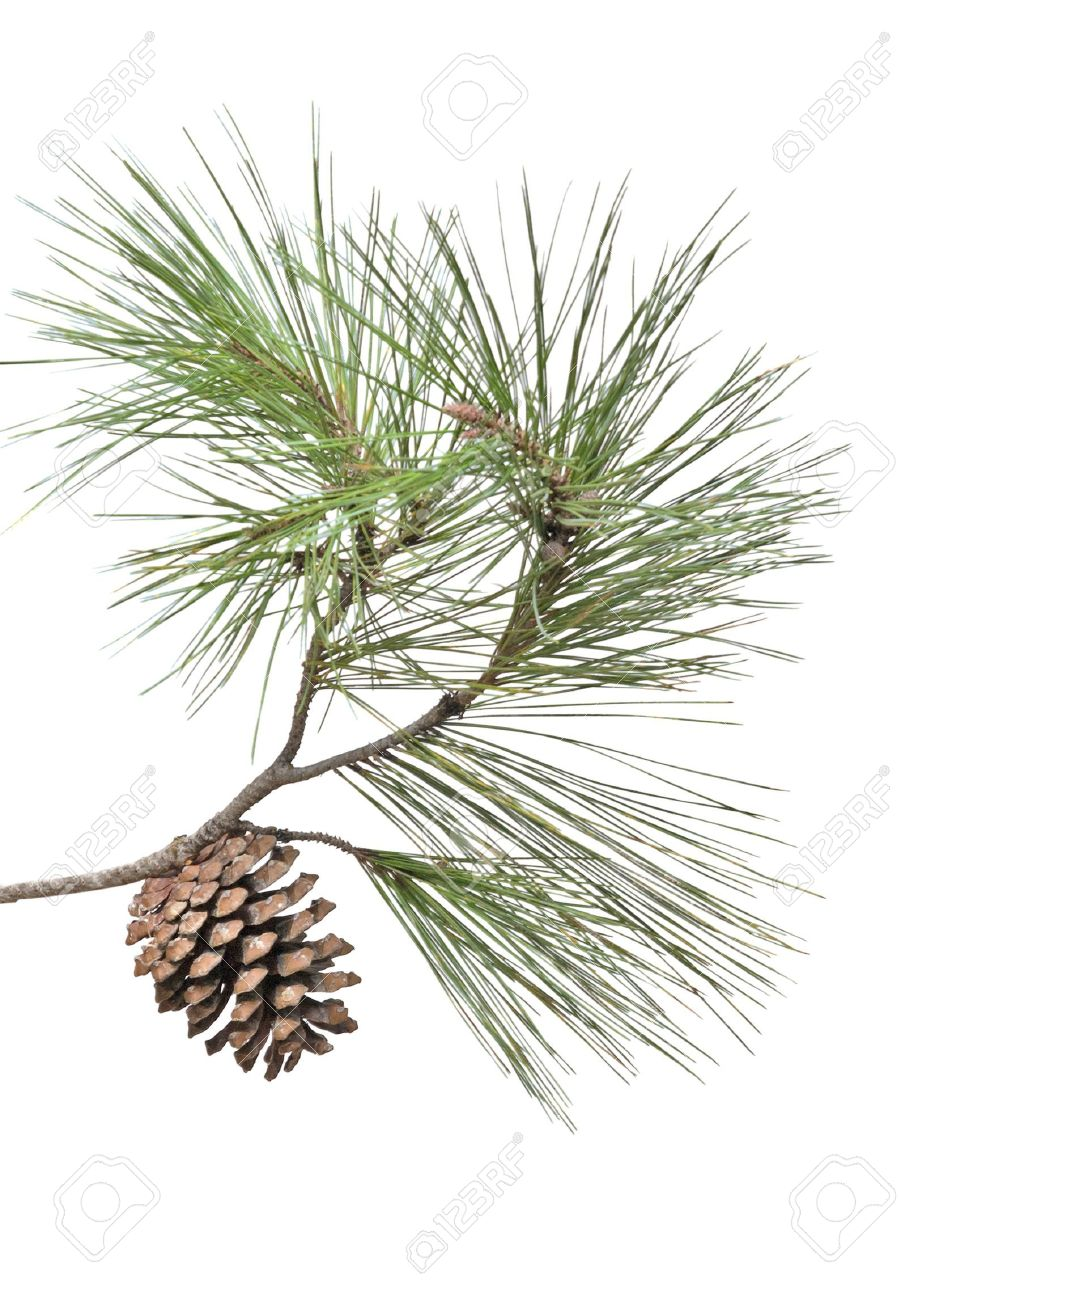 Pine Branch With Cone Isolated On White Background Stock Photo Picture And Royalty Free Image Image 5891313